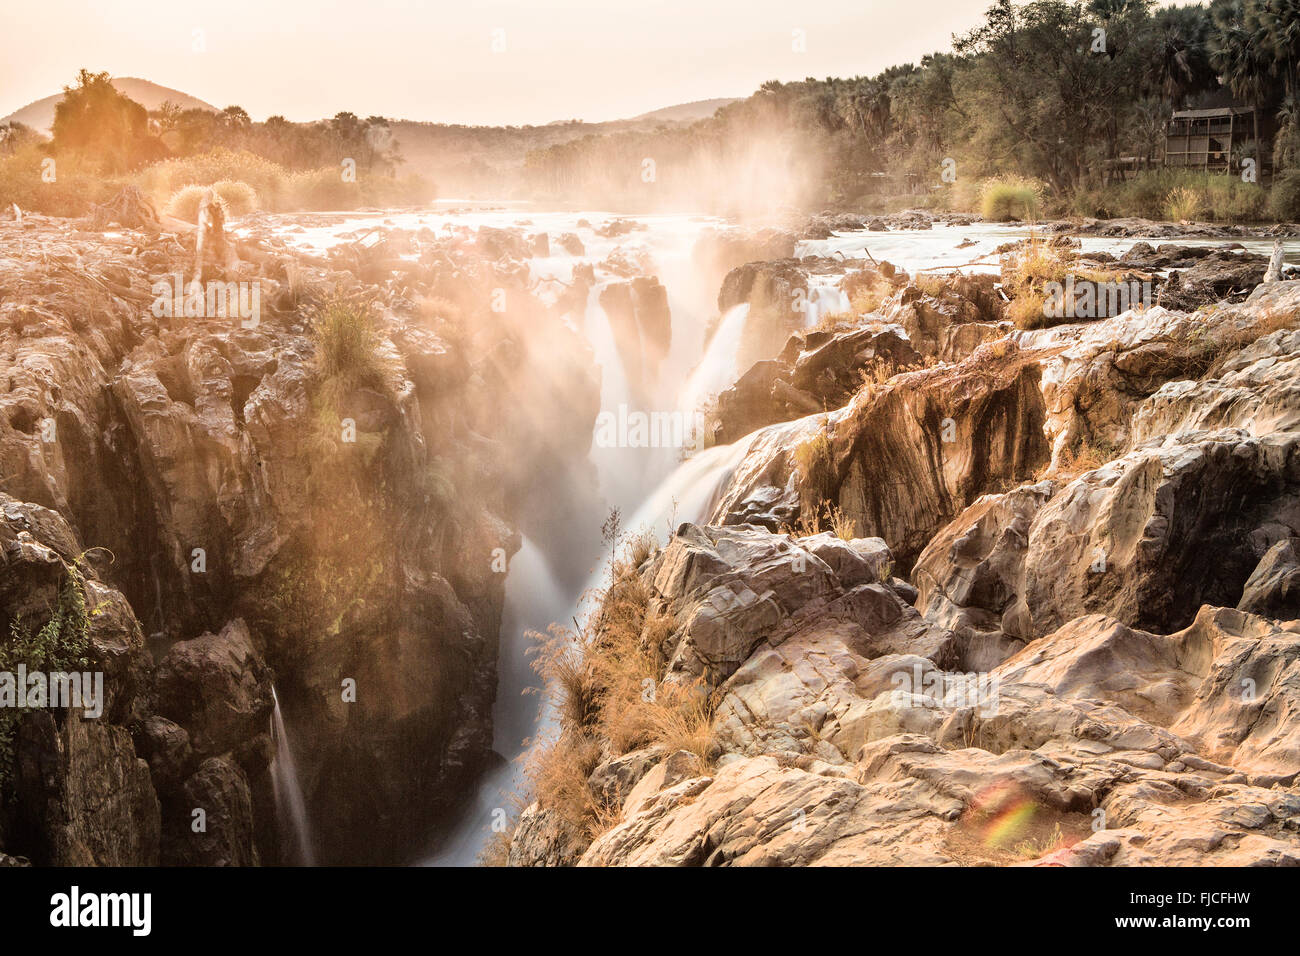 Epupa Waterfall - Stock Image